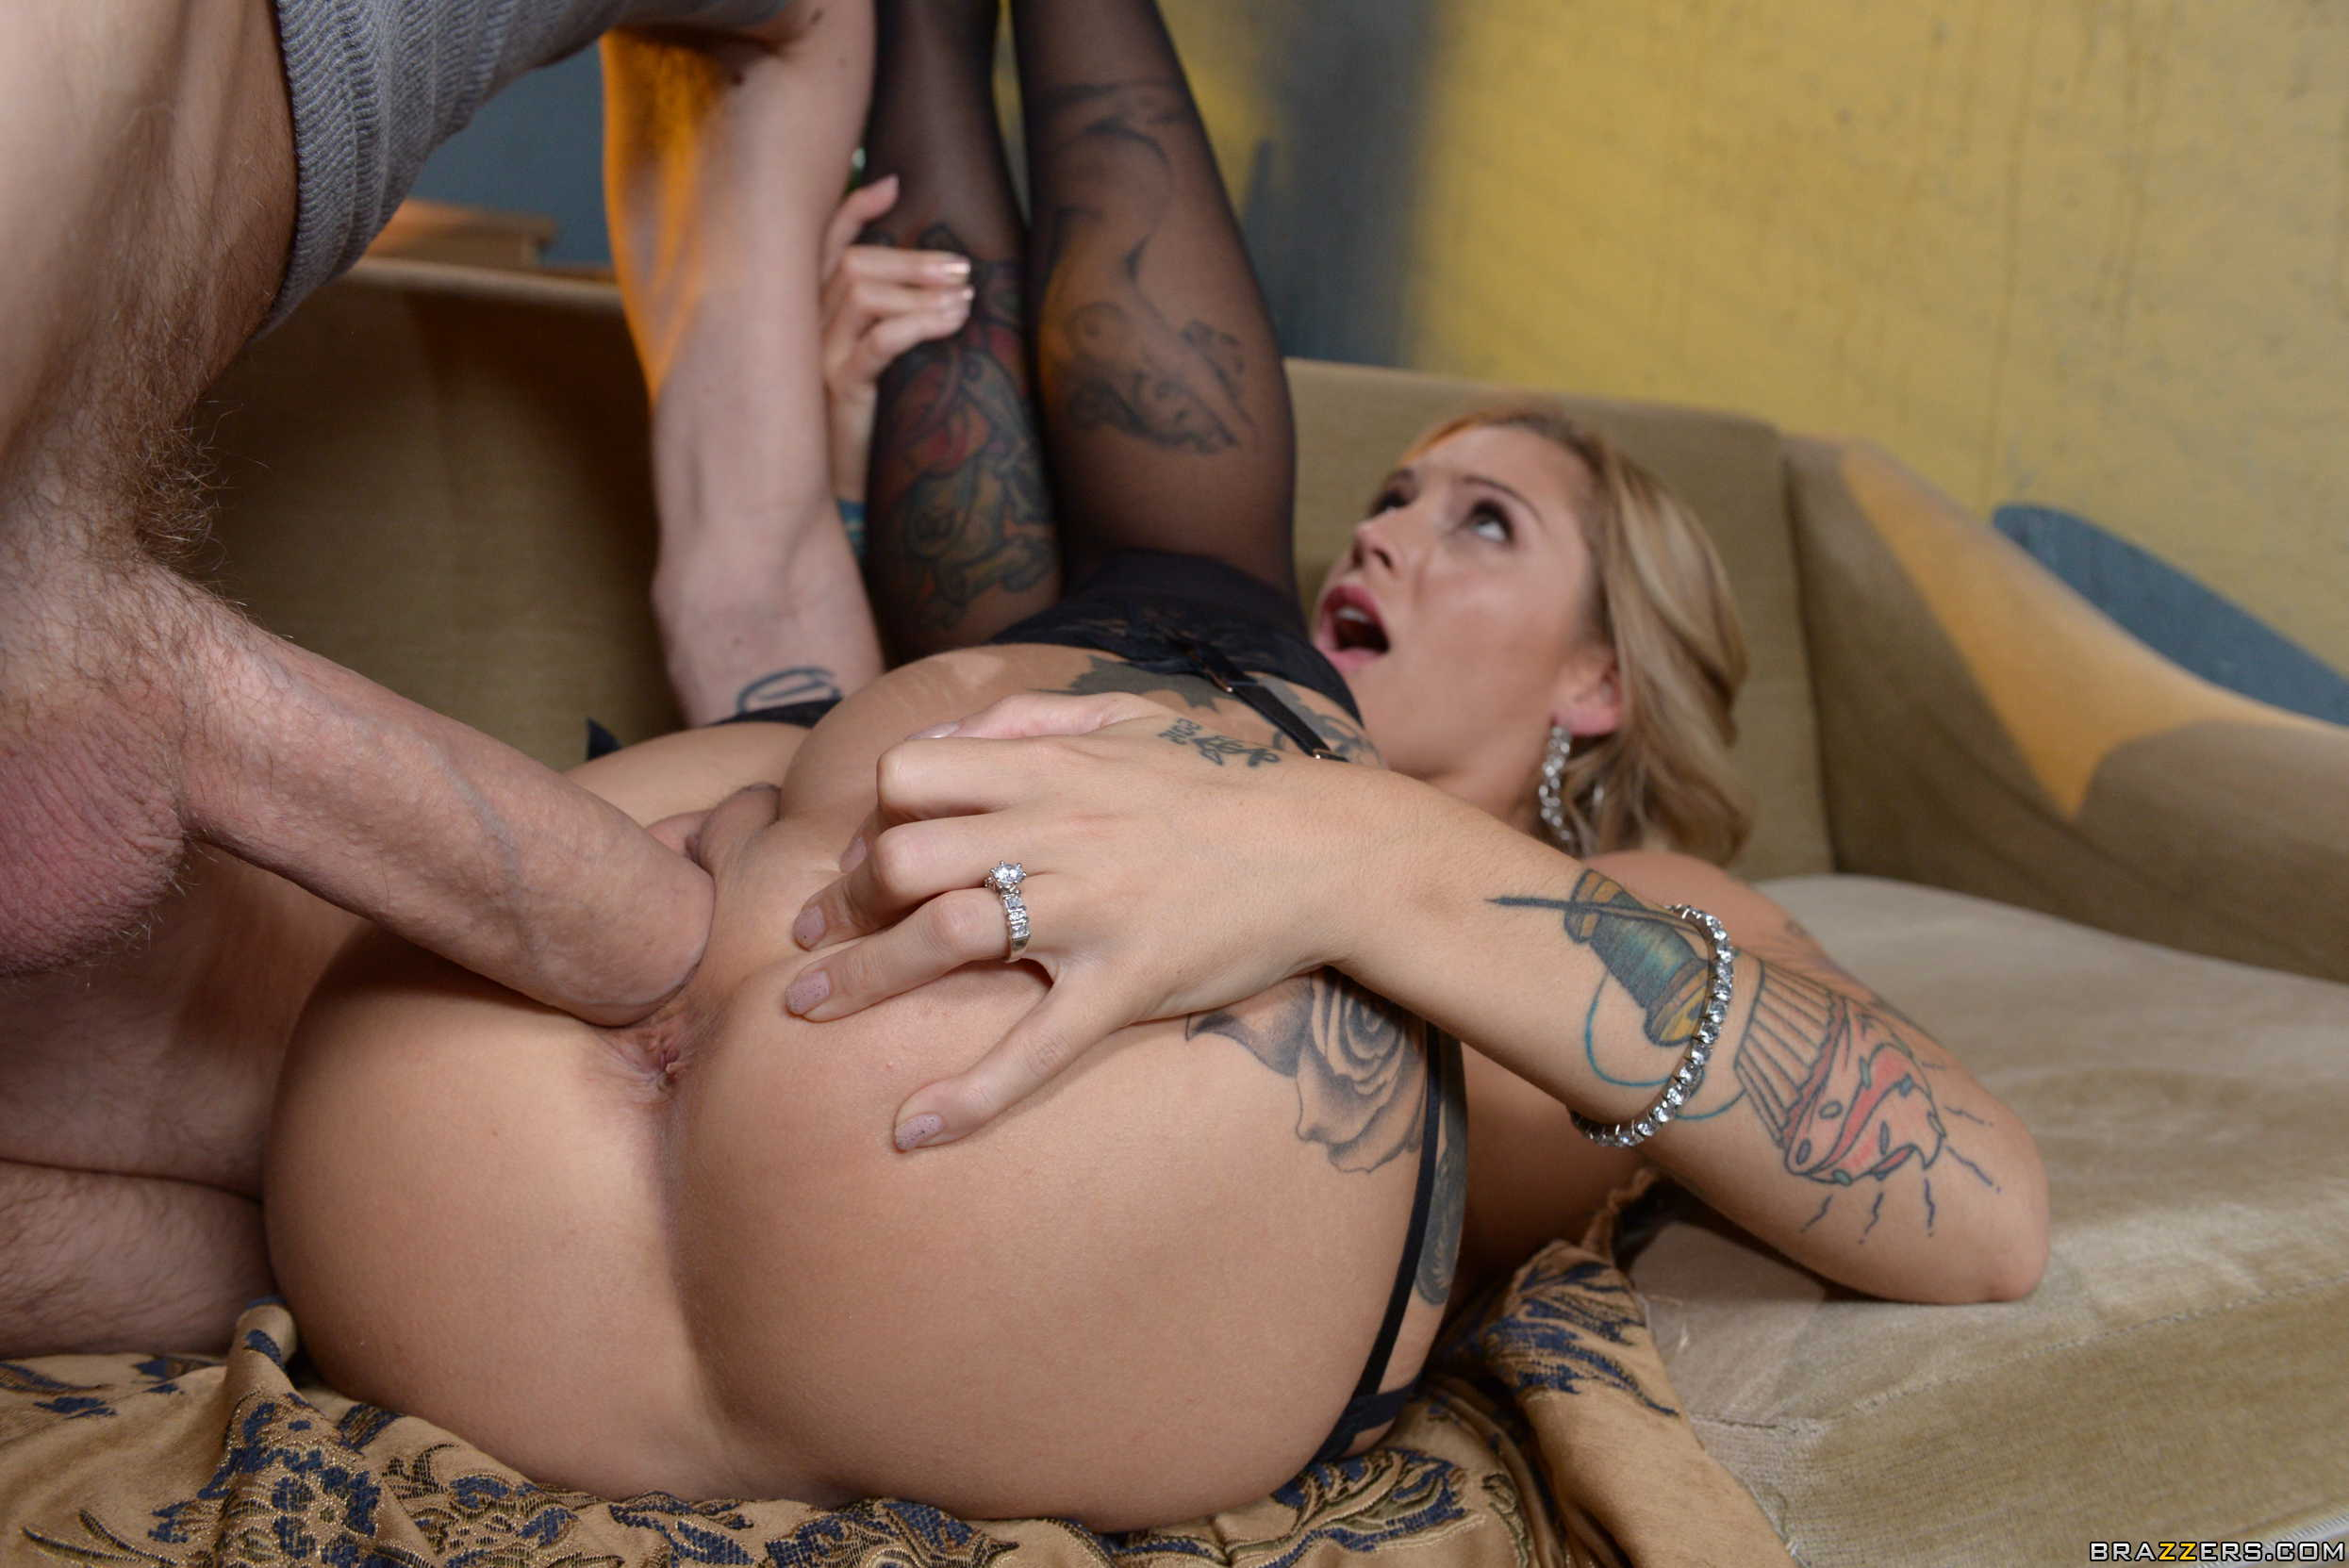 Buffy creampie busty lucie wilde